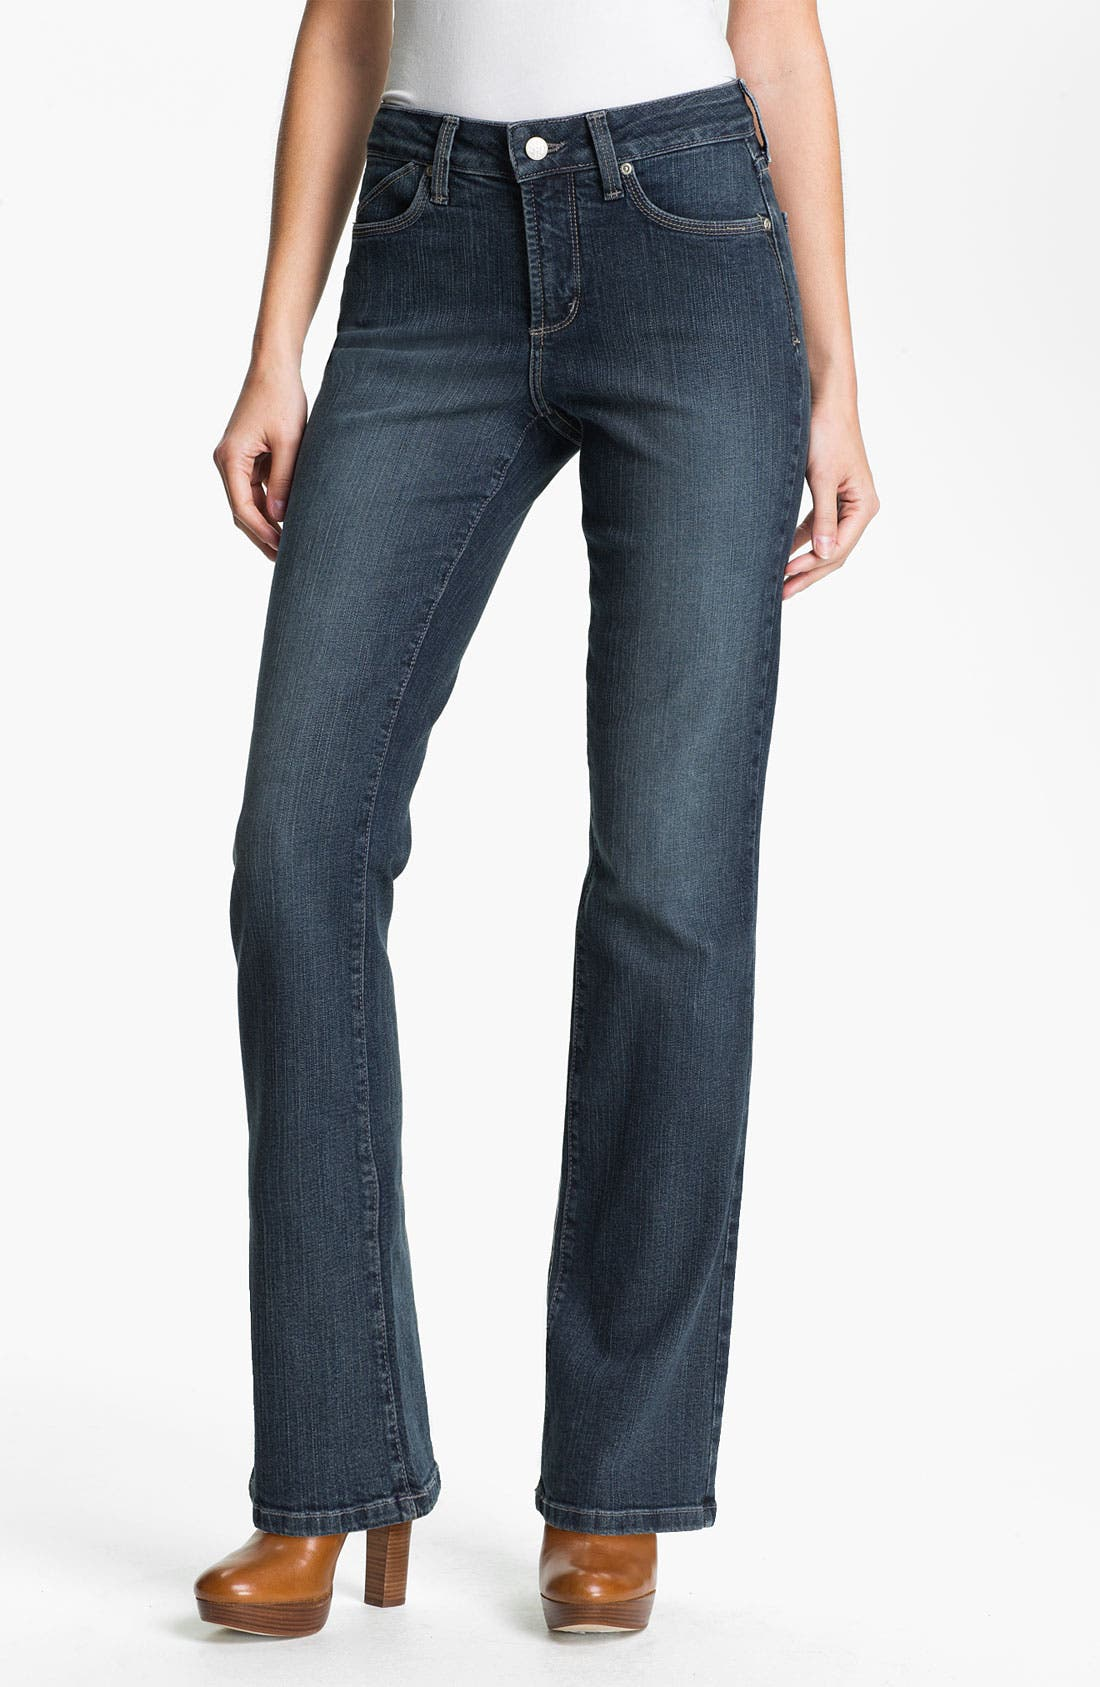 Alternate Image 1 Selected - NYDJ 'Barbara' Stitch Pocket Bootcut Jeans (Petite)